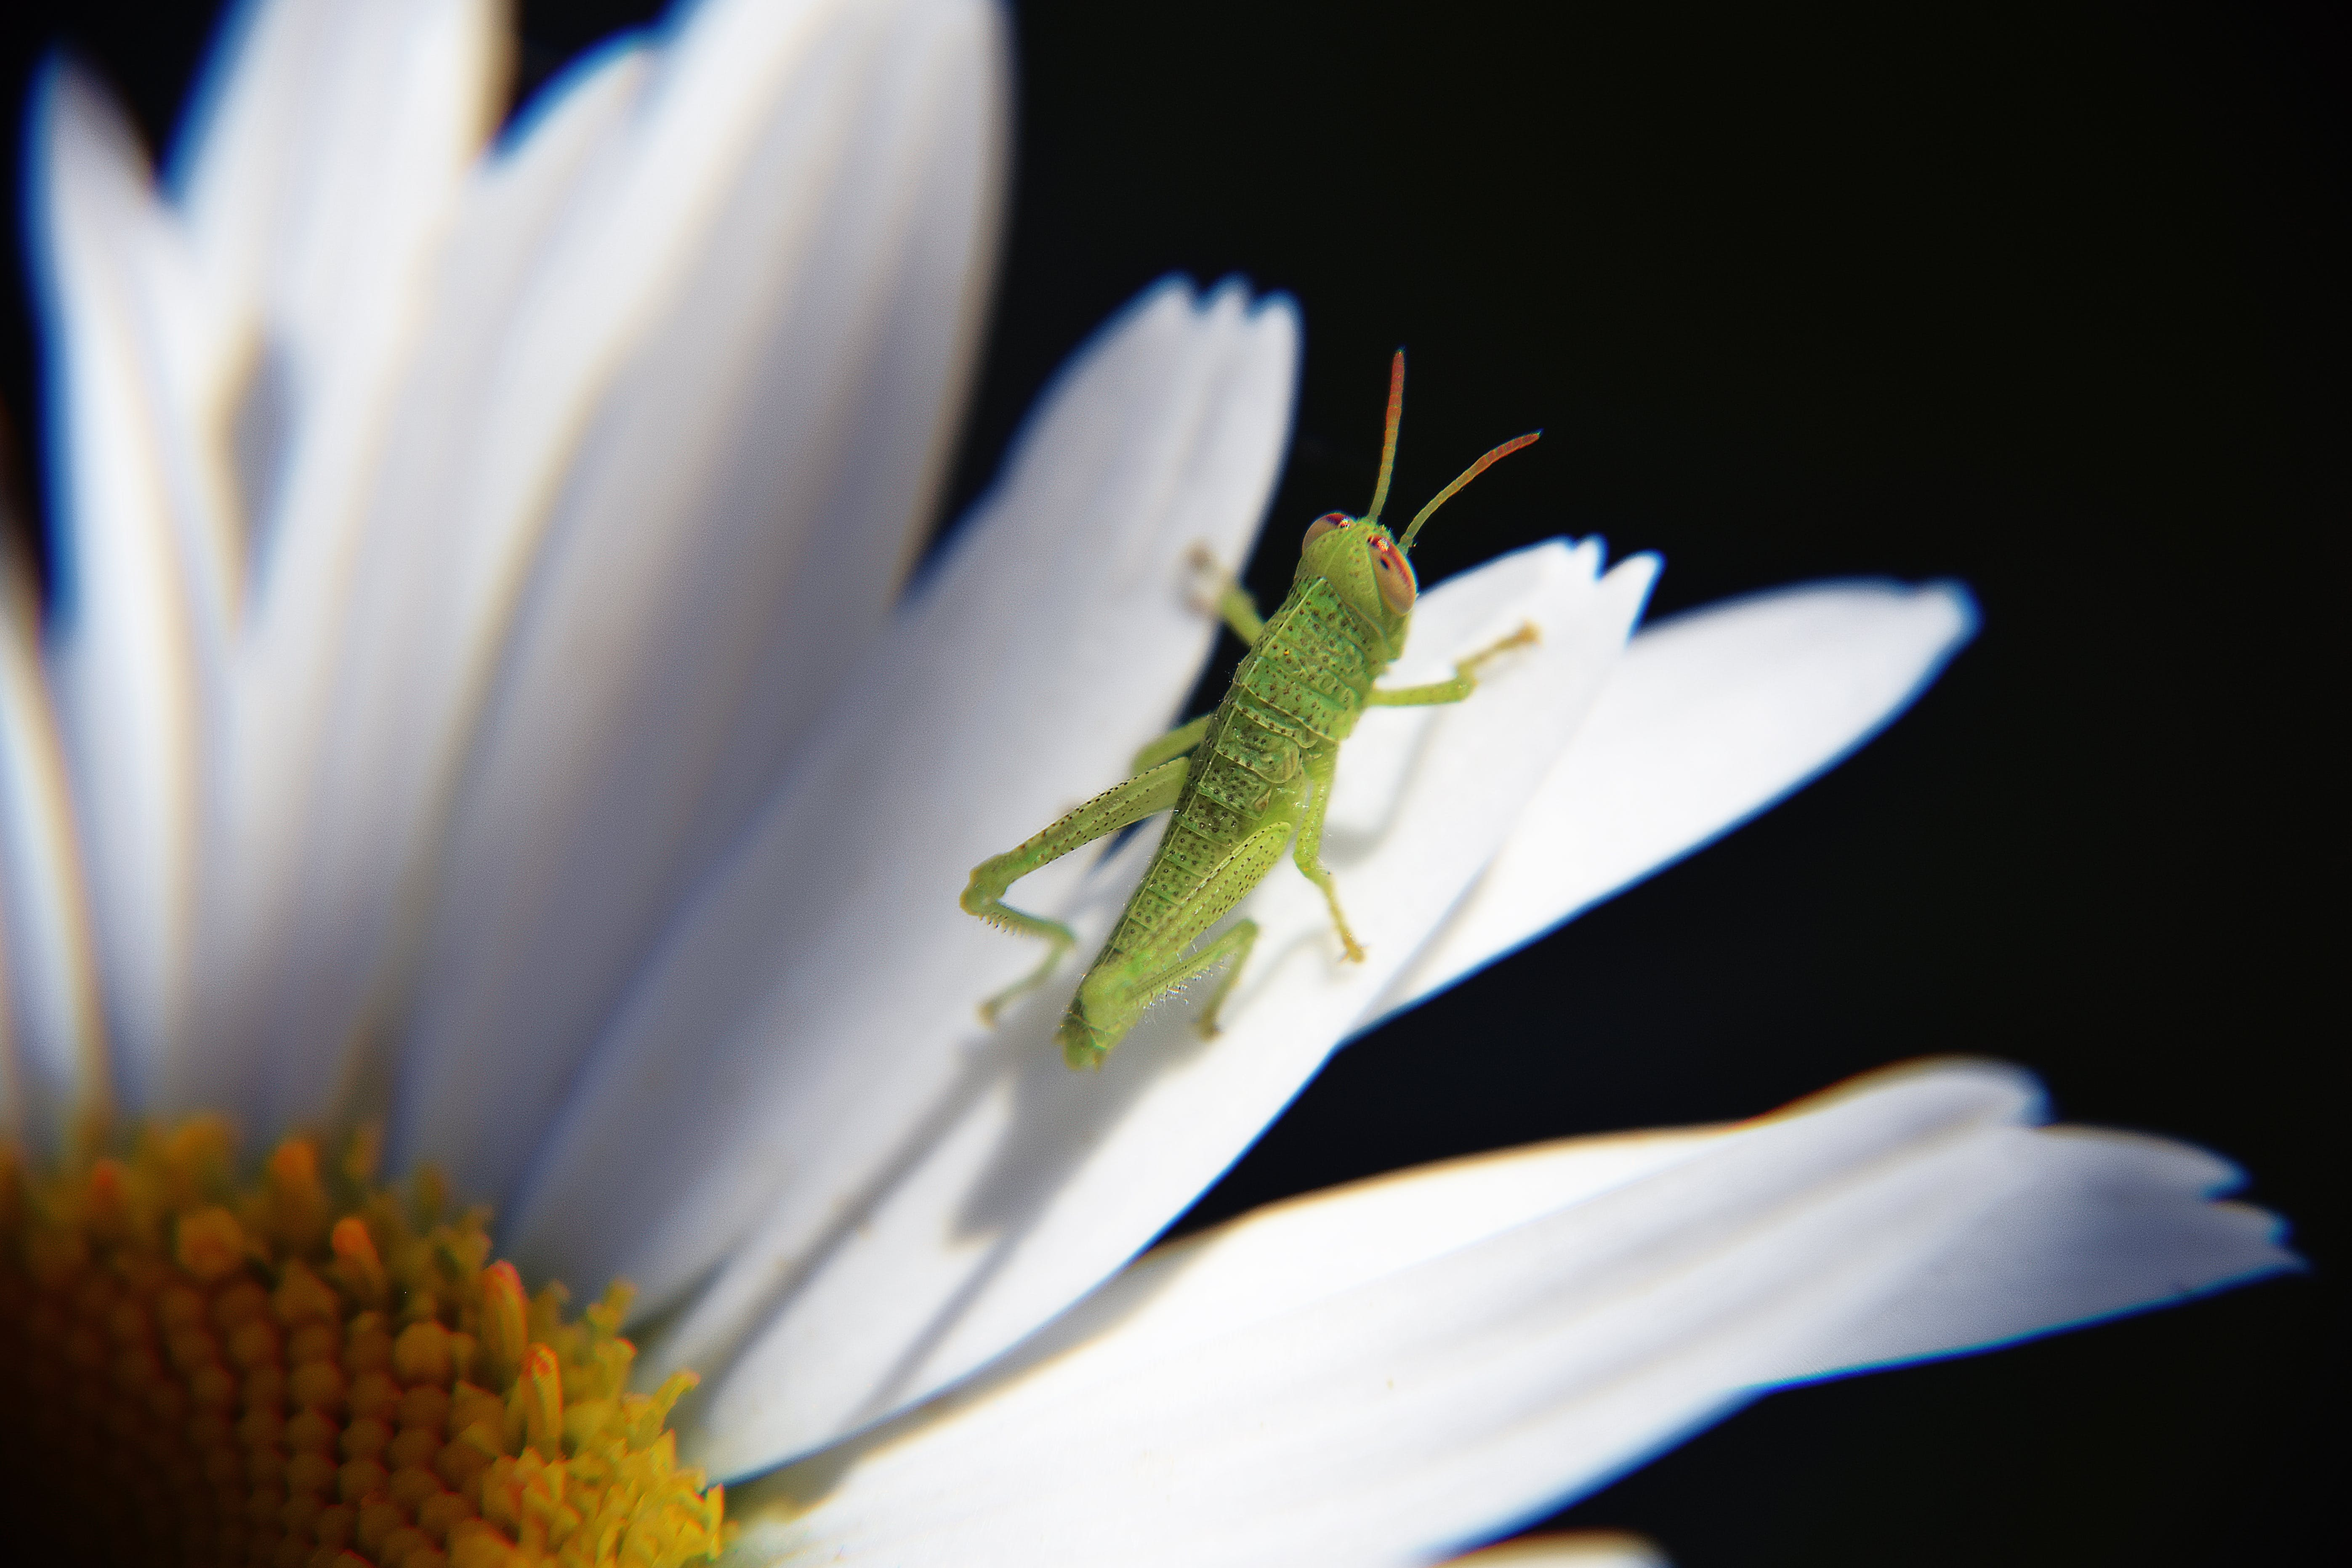 Green Grasshopper Perched on White Daisy Flower